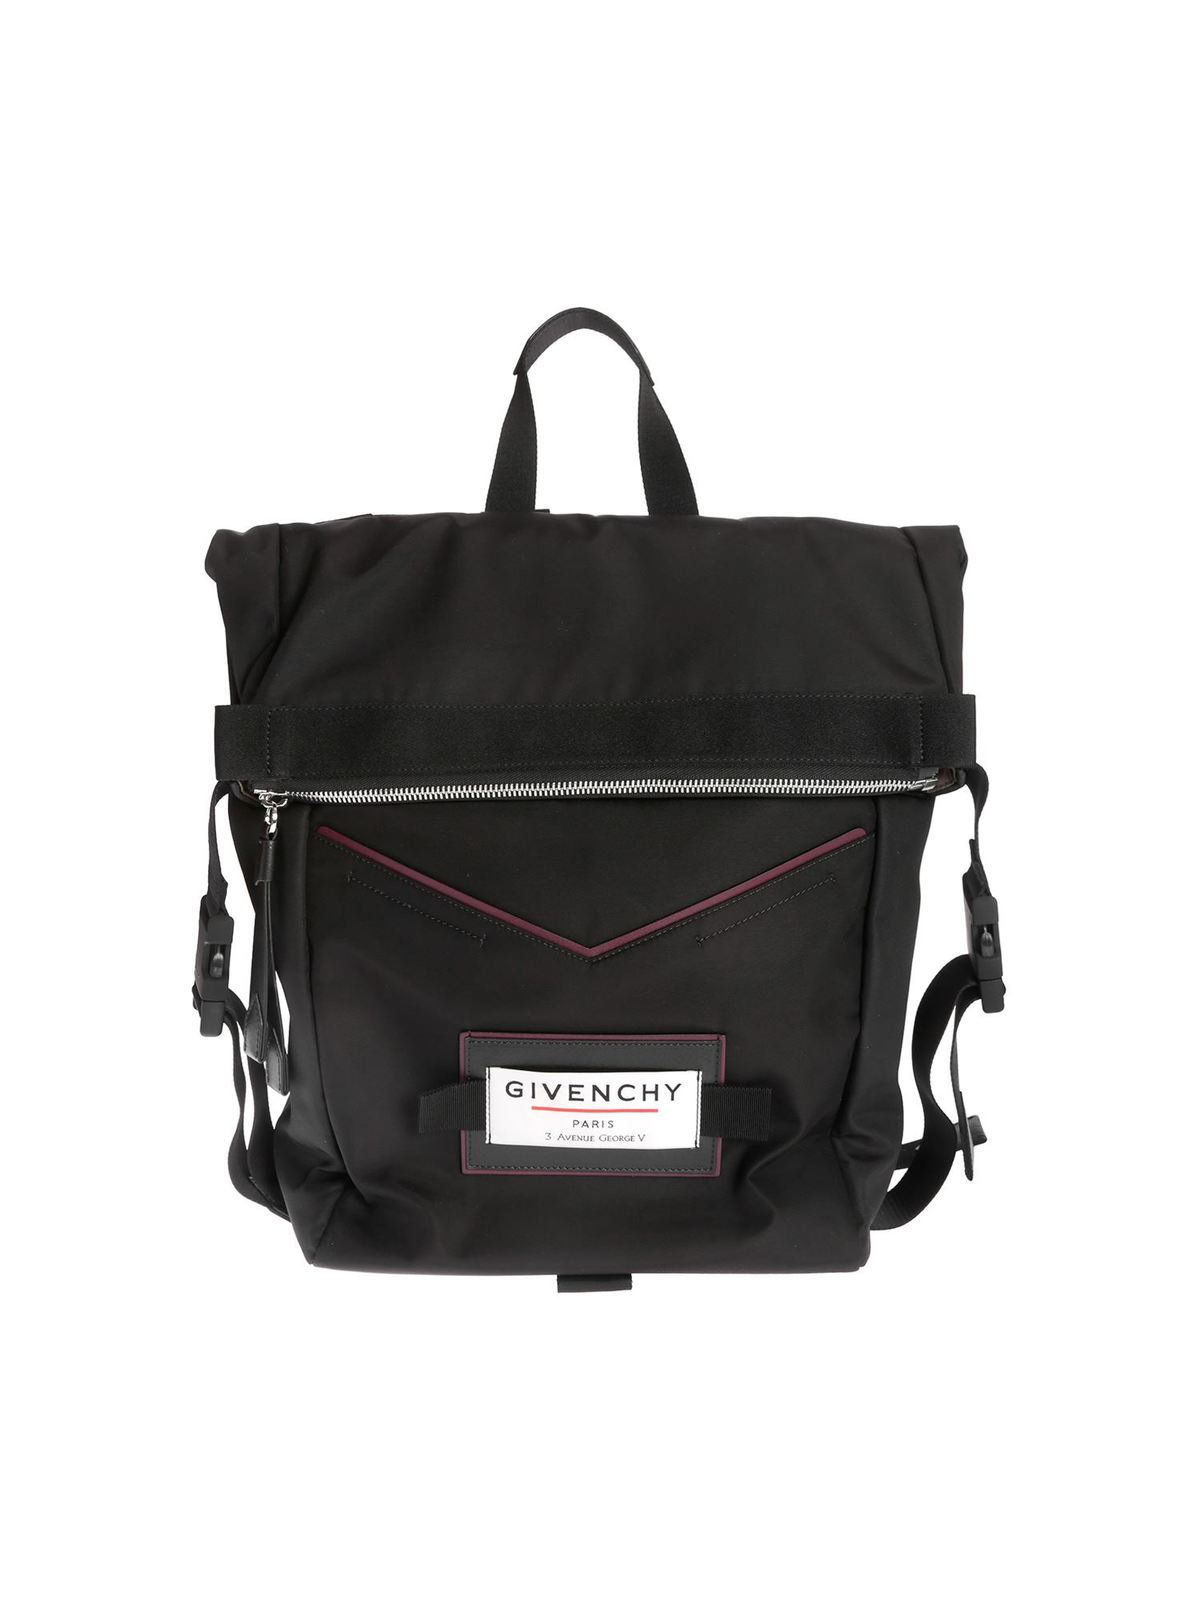 Givenchy Backpacks GIVENCHY DOWNTOWN BACKPACK IN BLACK